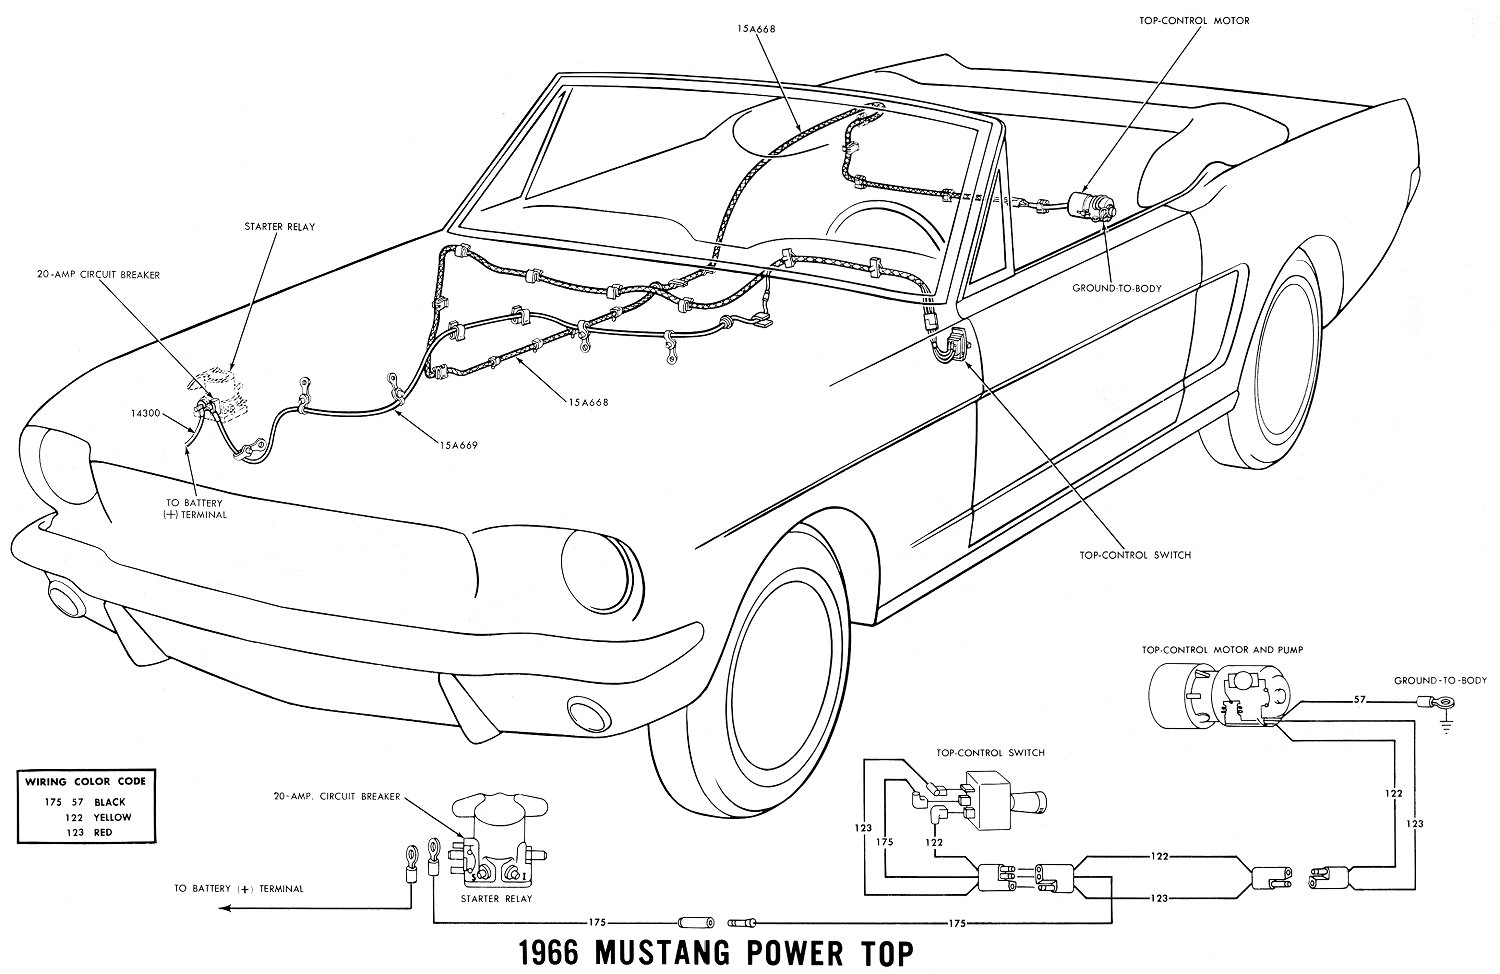 66pwrtop 1966 mustang wiring diagrams average joe restoration 66 mustang ignition wiring diagram at soozxer.org